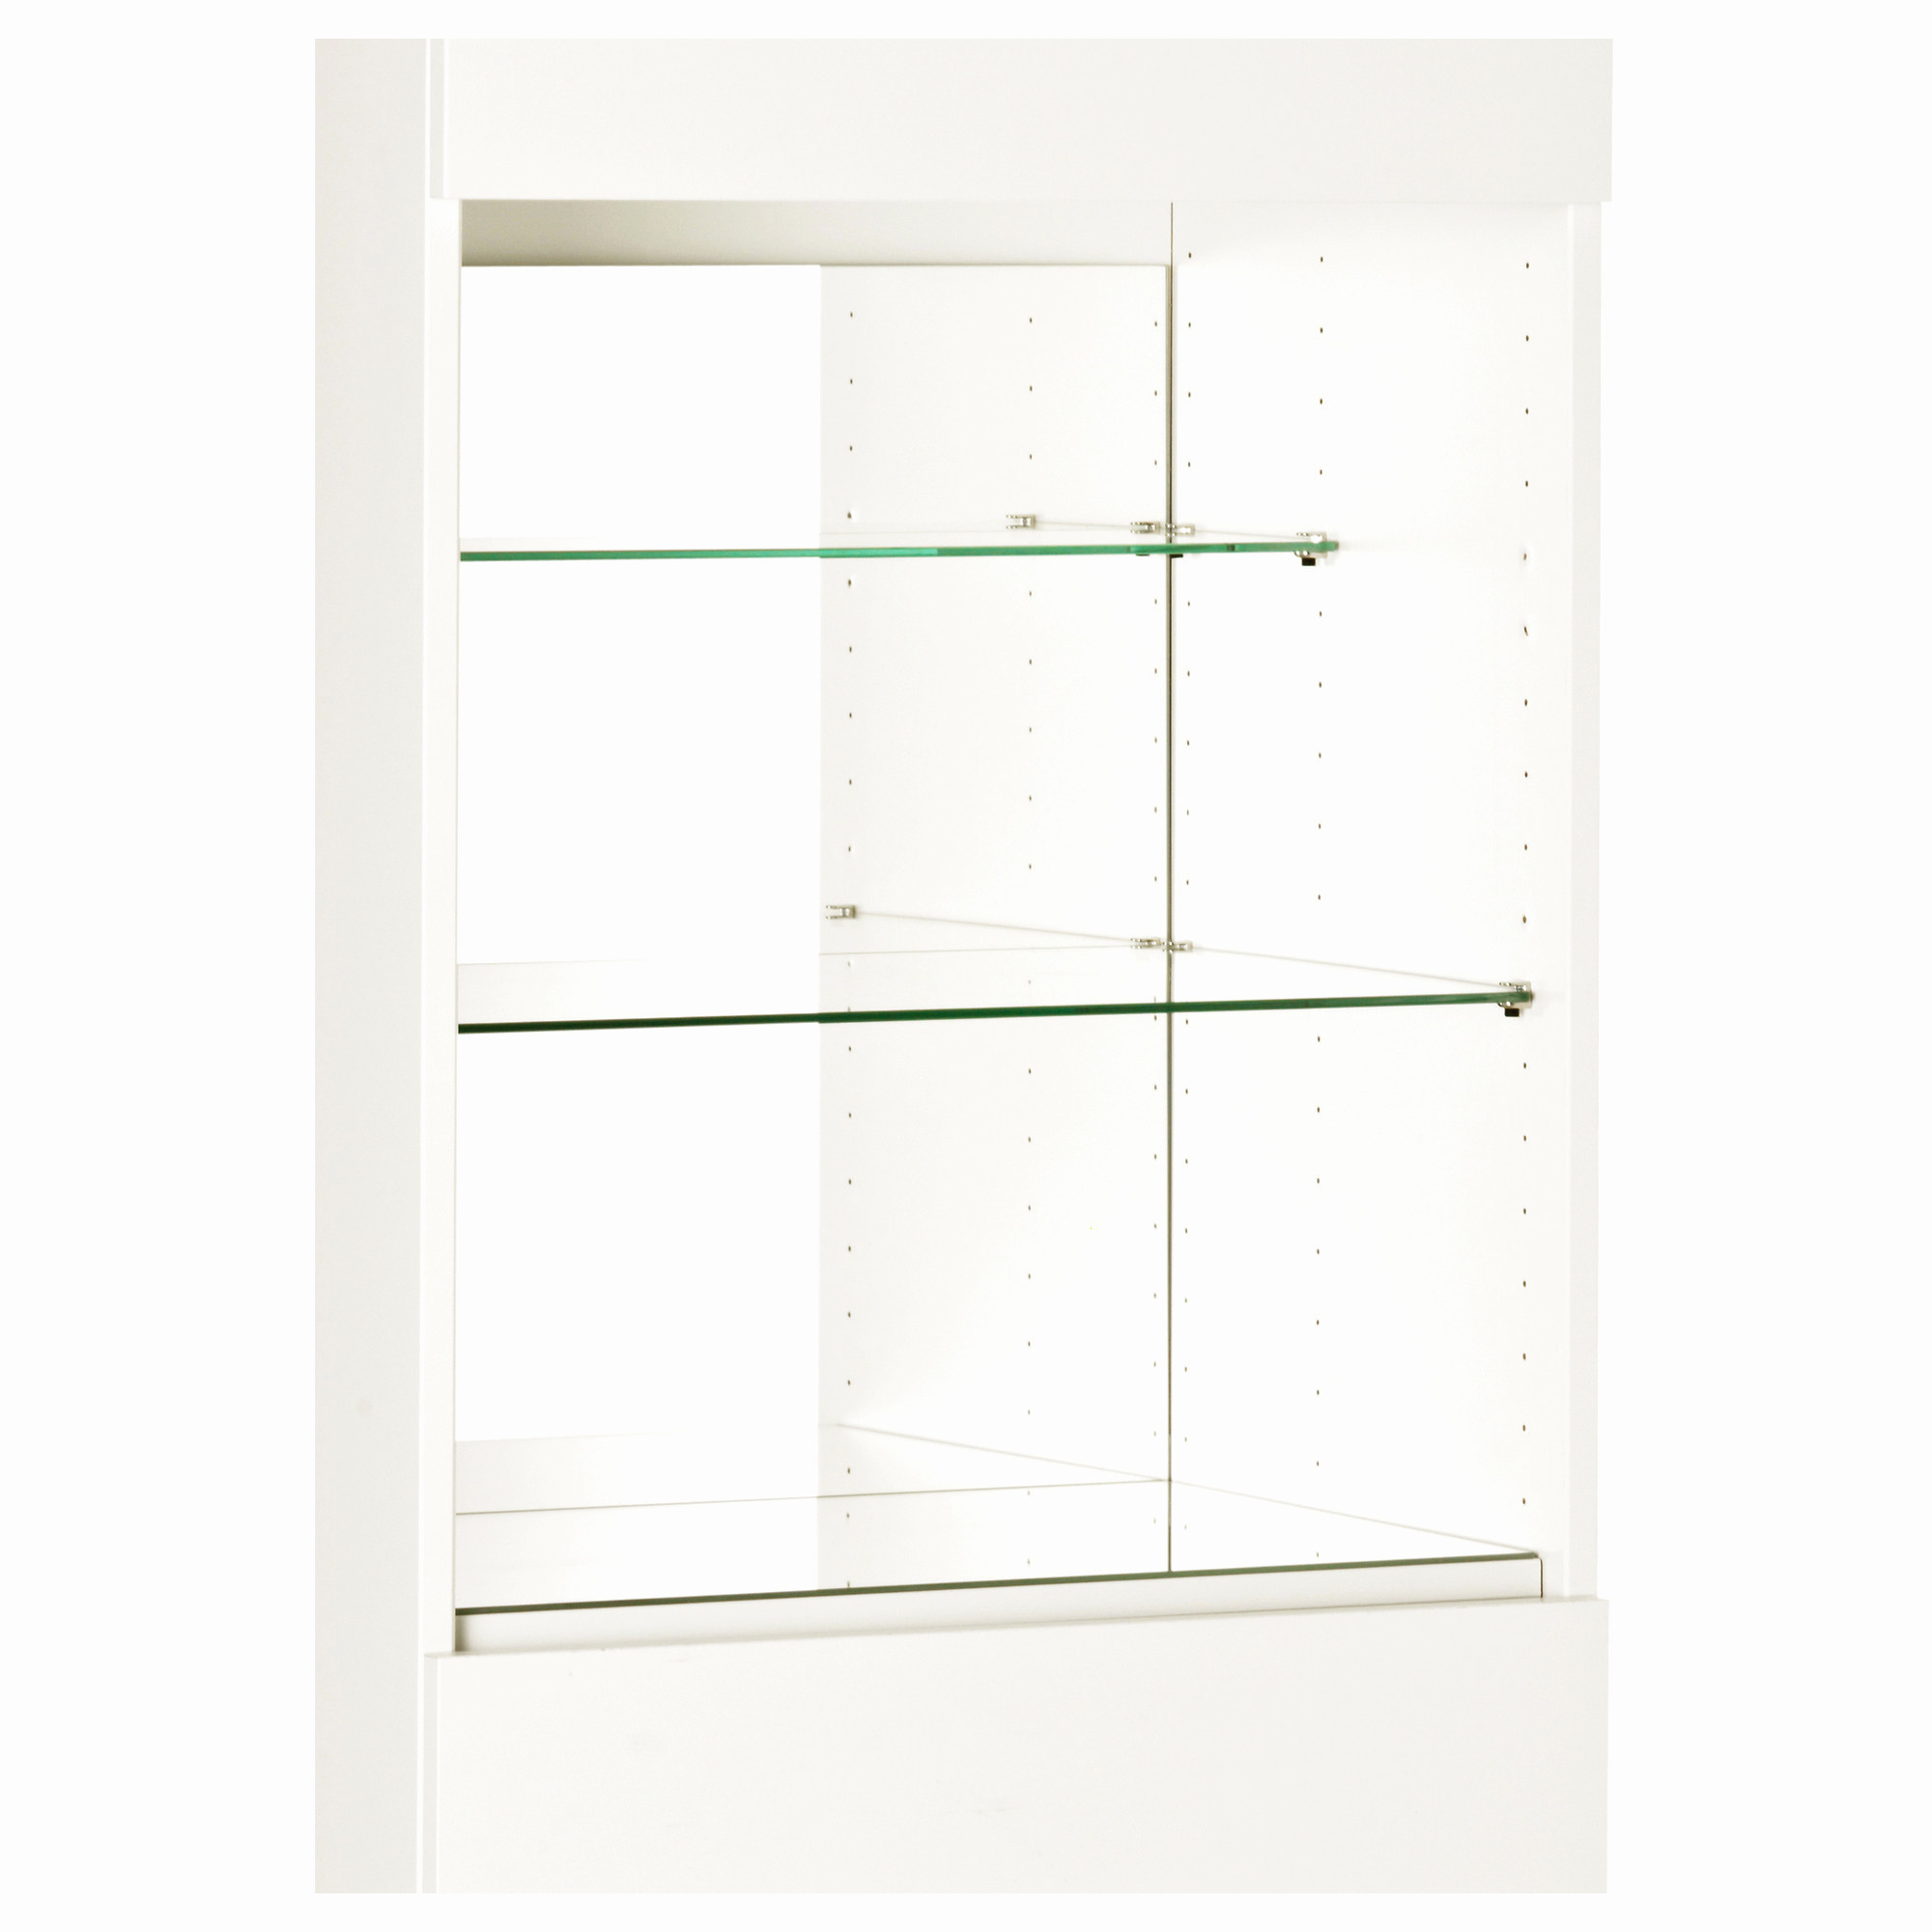 Vase Lights Of Glass Display Case with Lights Best Of New Design Ikea Glass Display Intended for Glass Display Case with Lights Best Of New Design Ikea Glass Display Luxury Pe S5h Vases